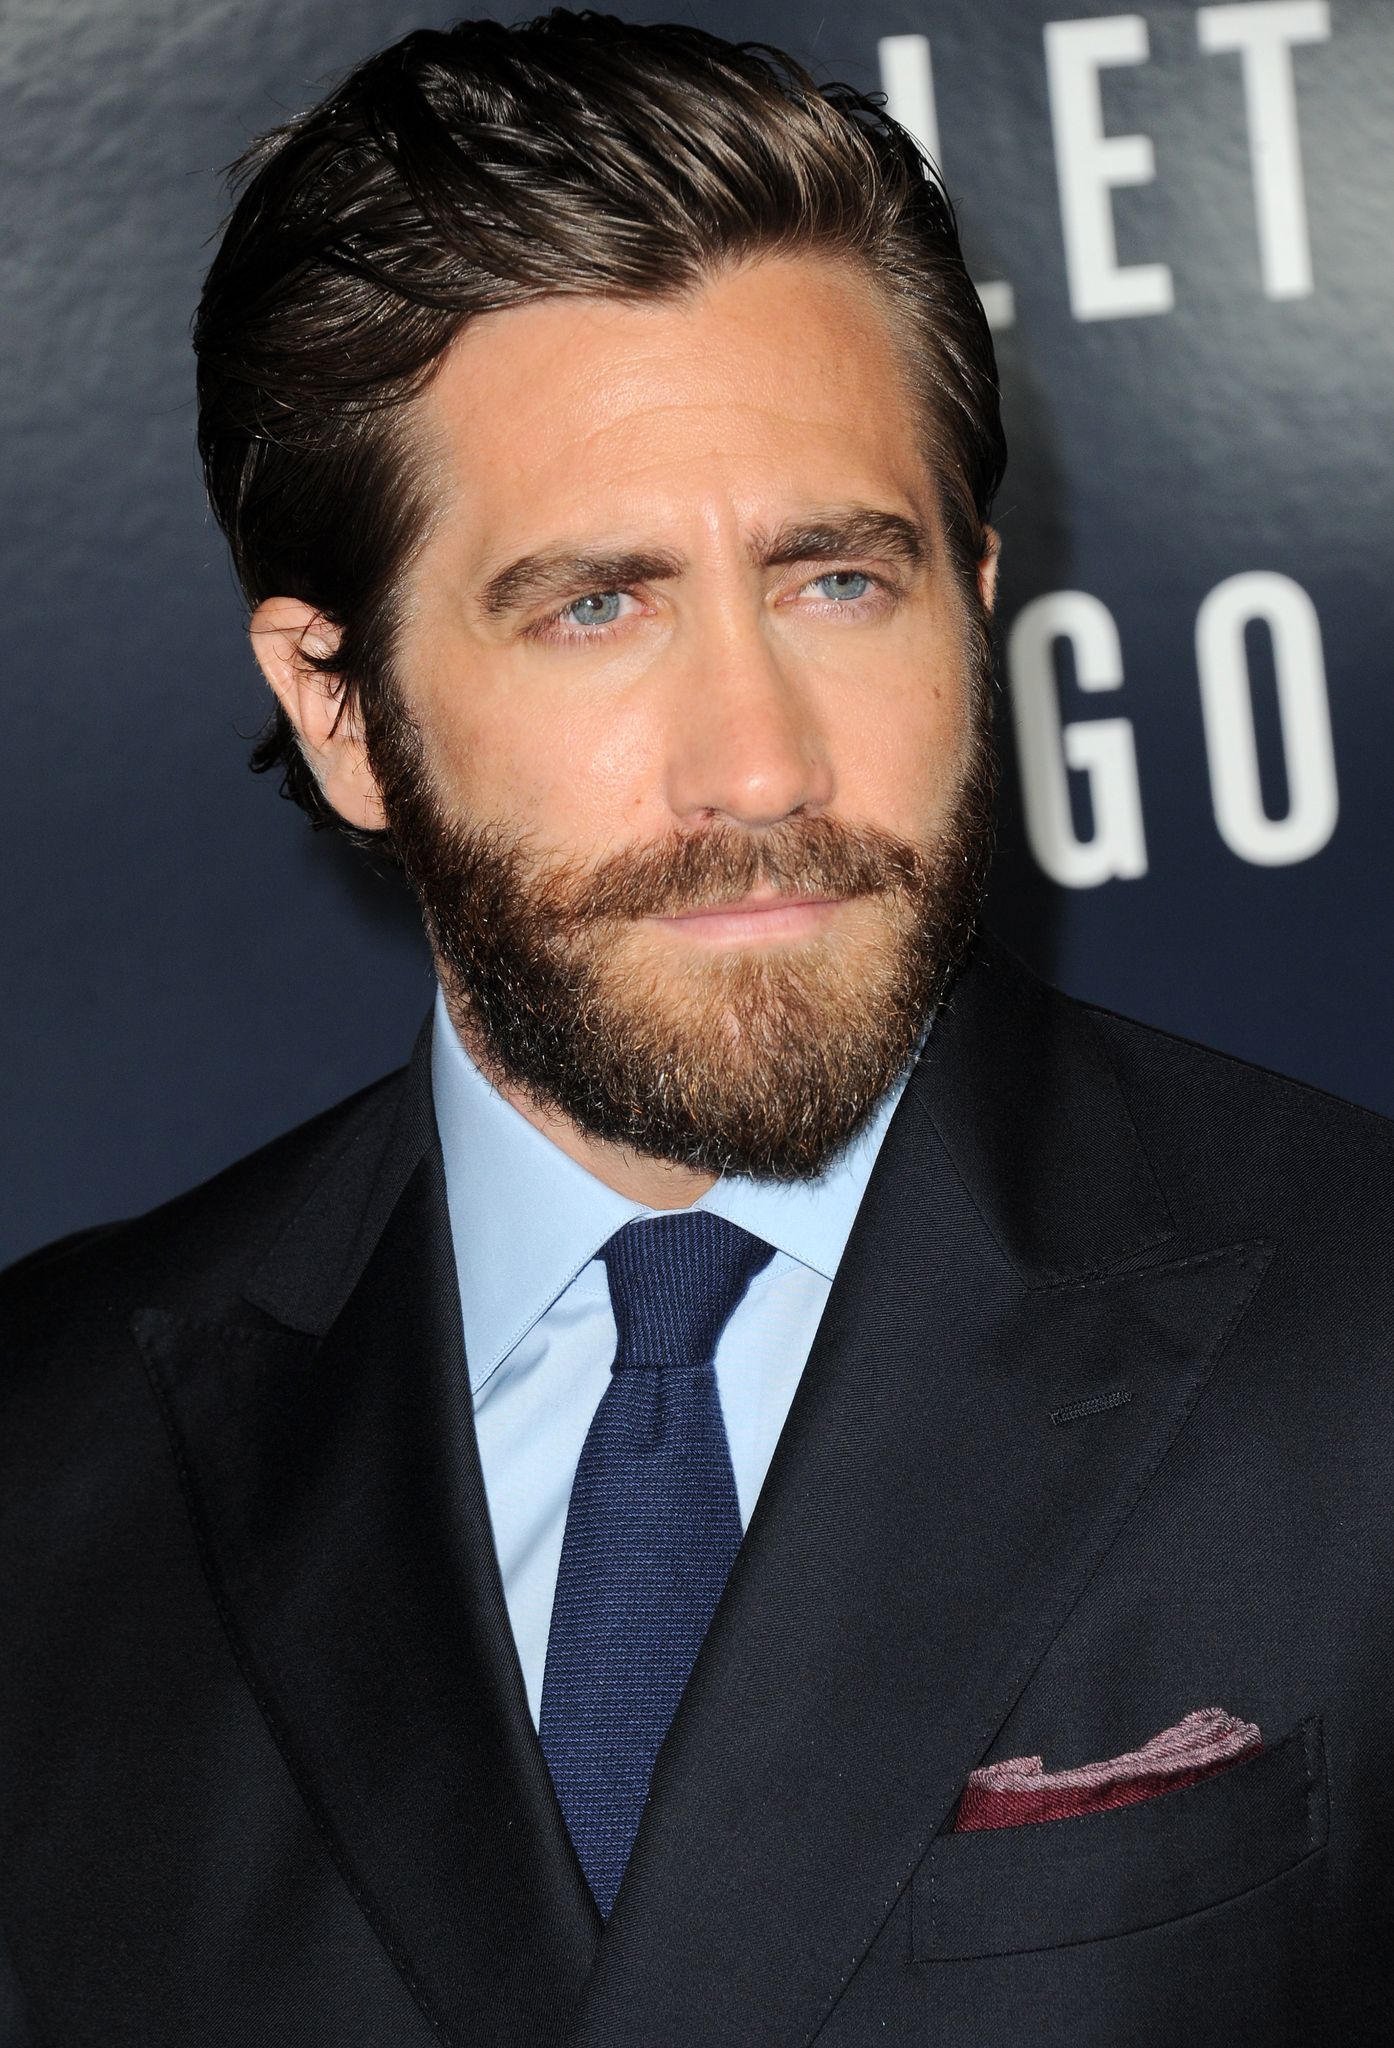 Jake Gyllenhaal at an event for Everest (2015)